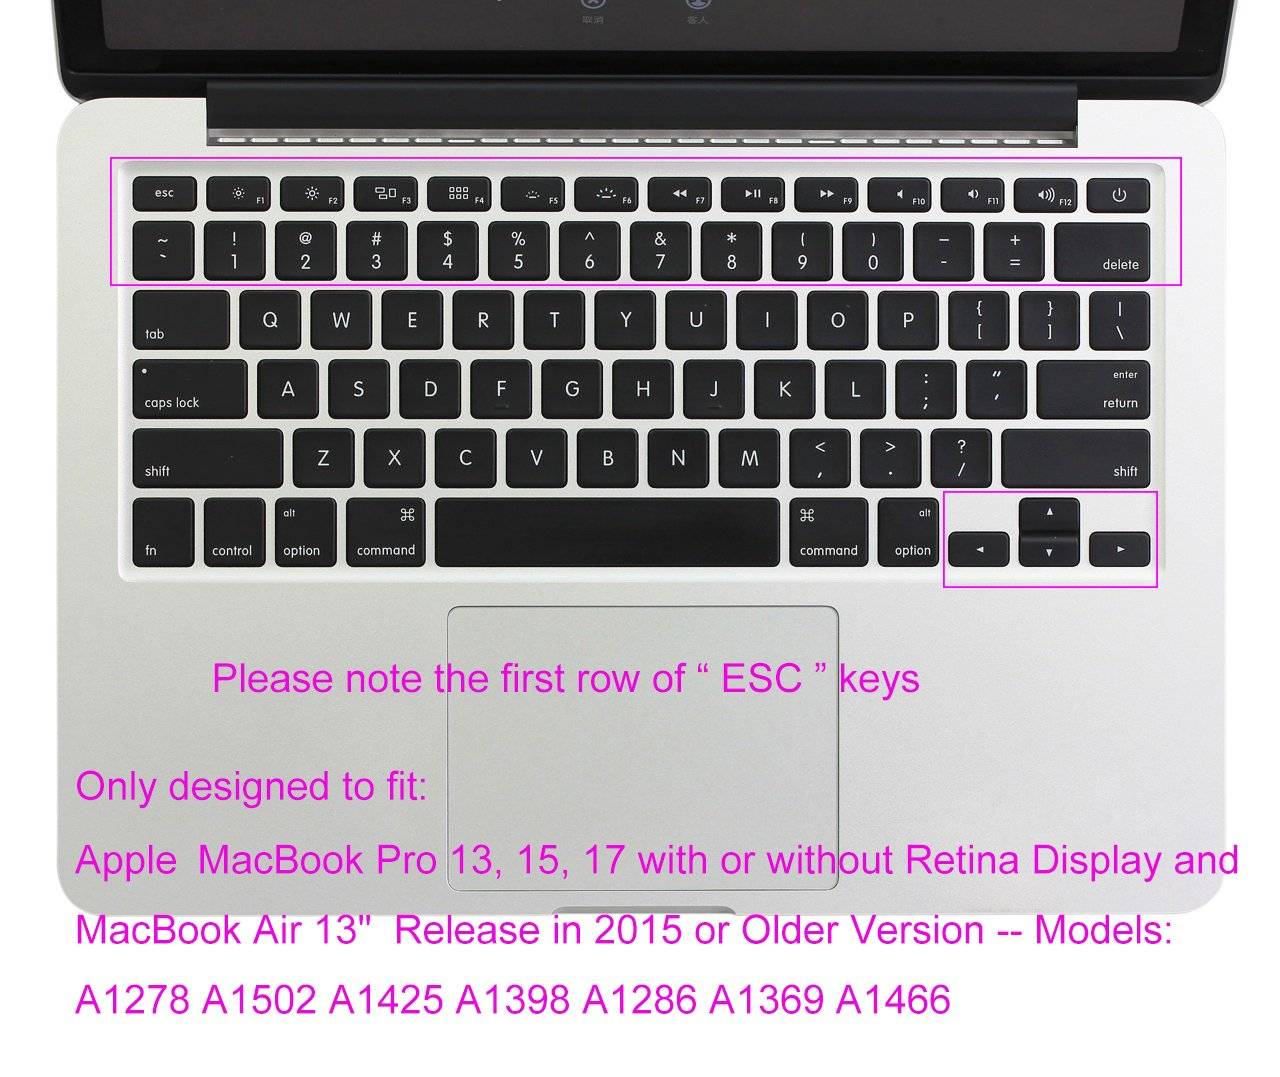 Amazon.com: Backlit See Through Hollow Out Silicone Keyboard Cover Skin for MacBook Air 13 inch A1369 A1466 & 2015 or Older Versions MacBook Pro 13 15 inch ...